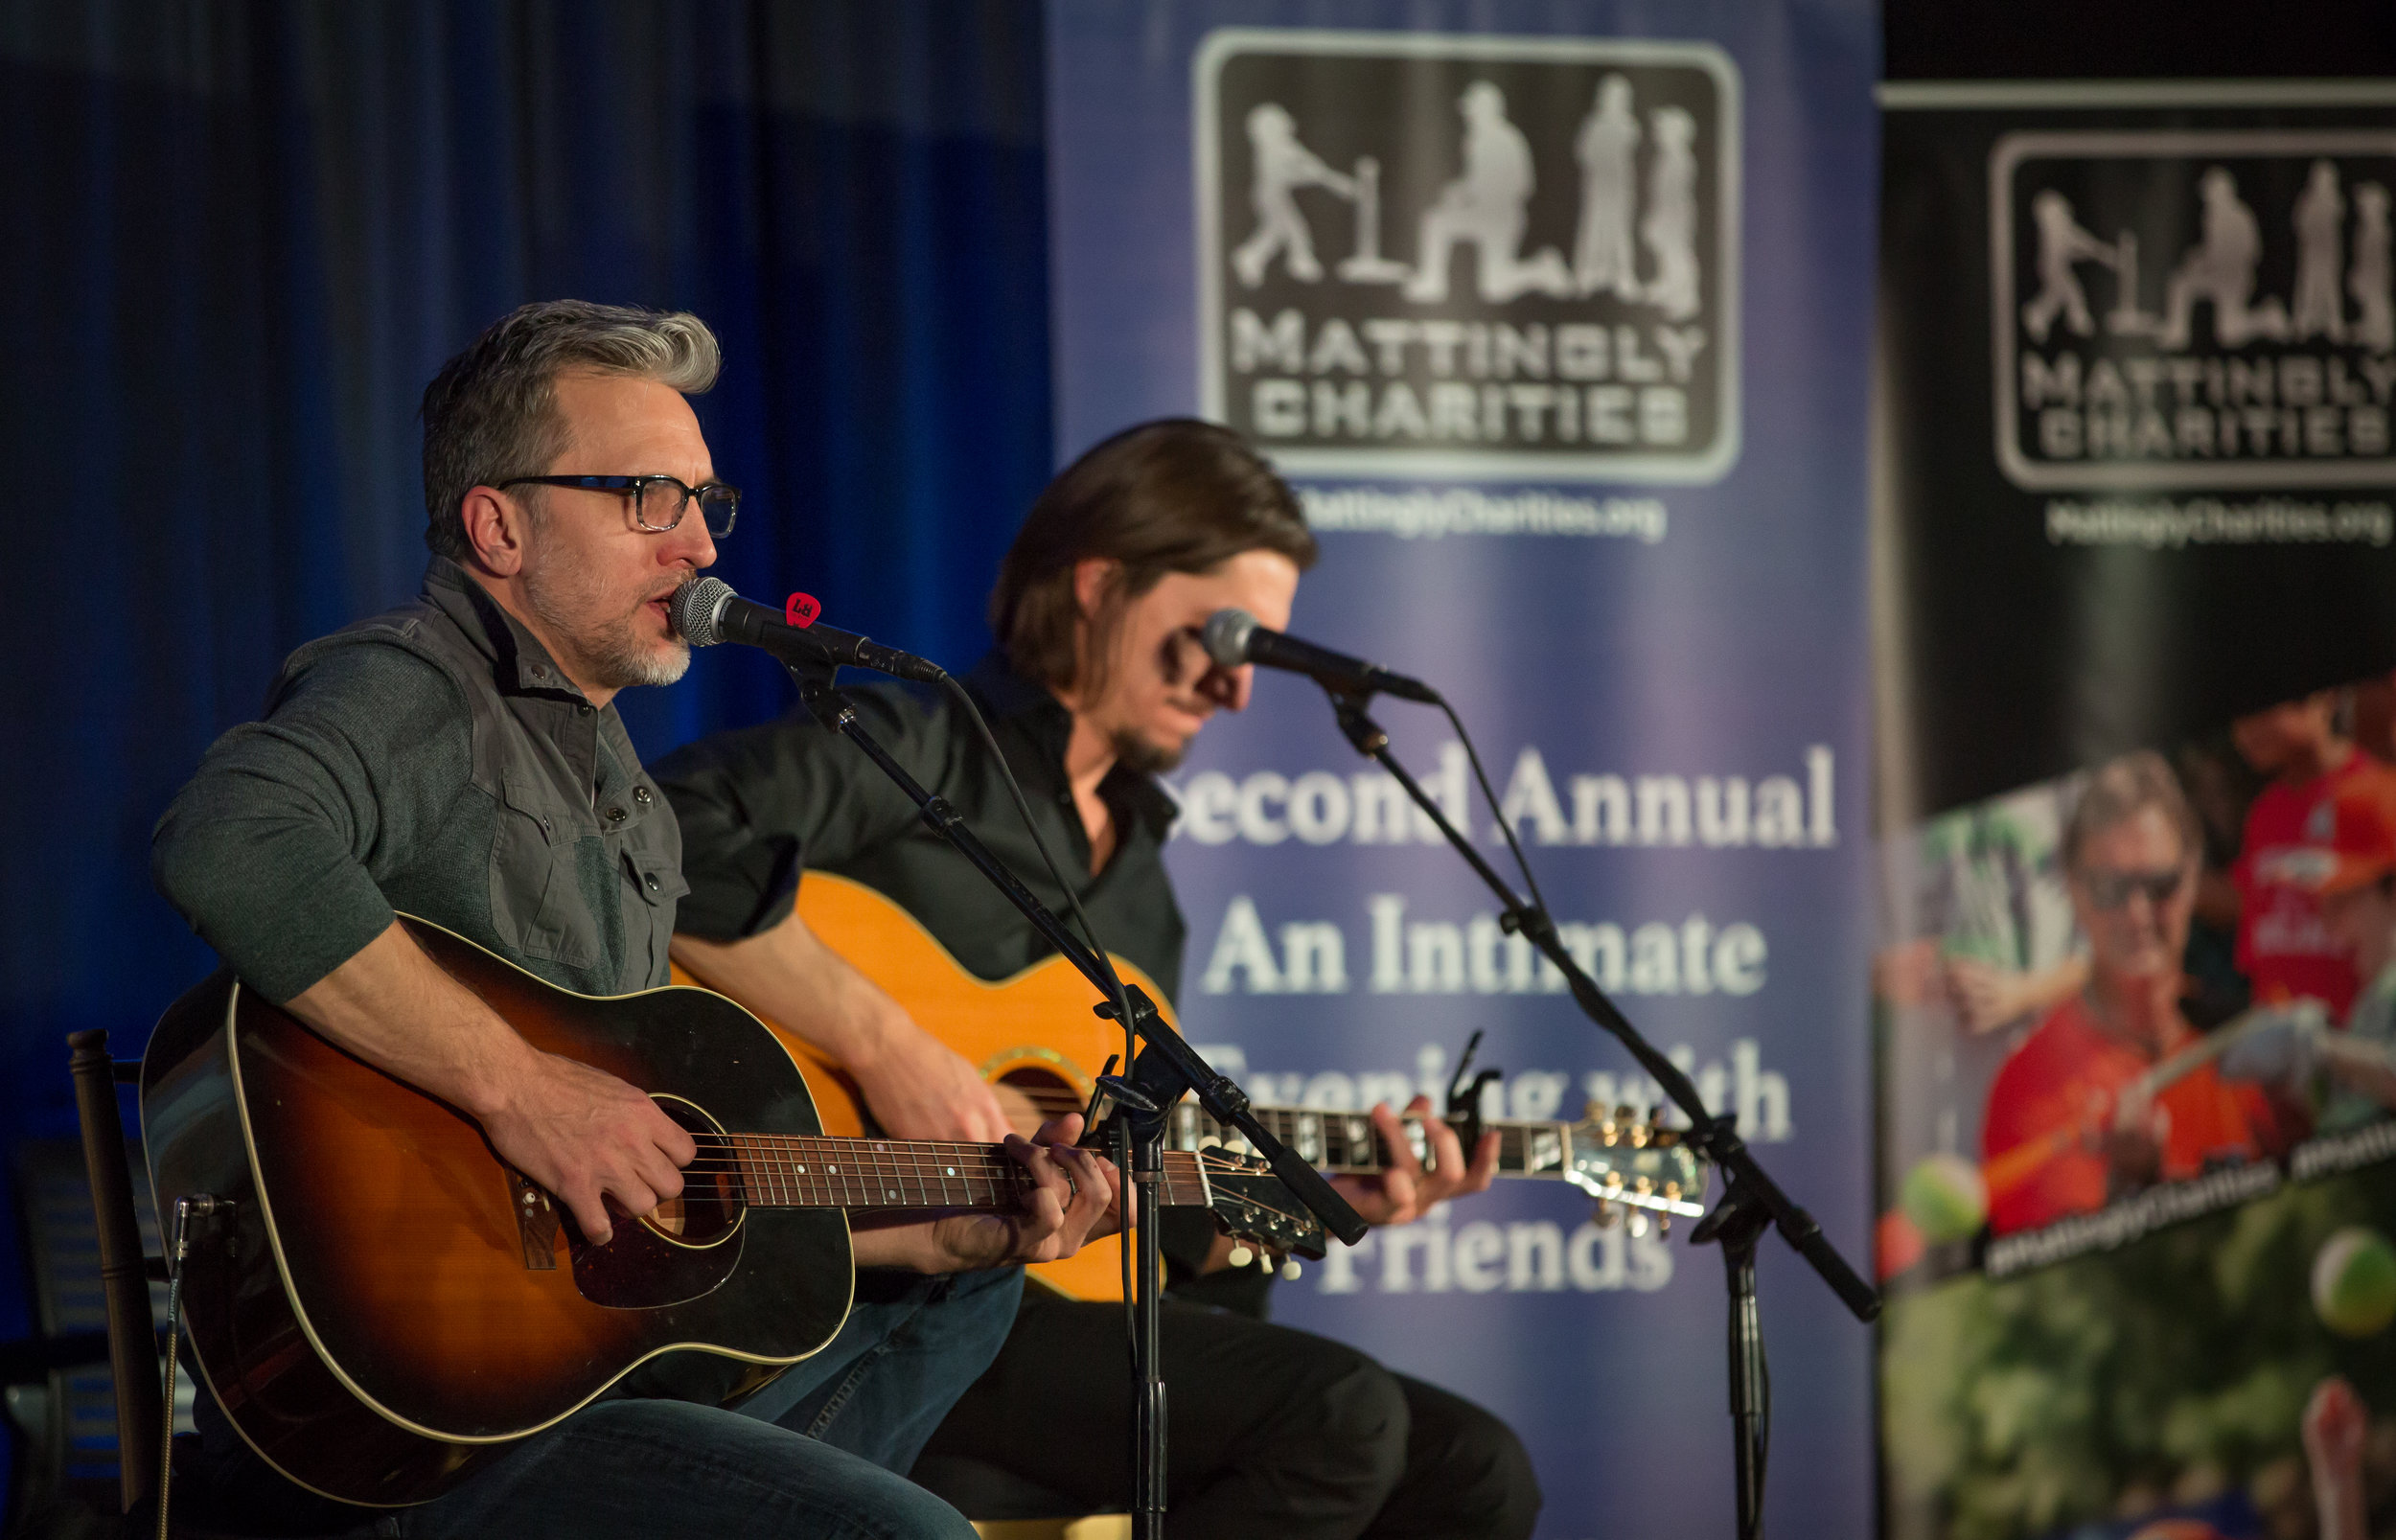 Mattingly Charities Event Muscial 9 2016_.jpg